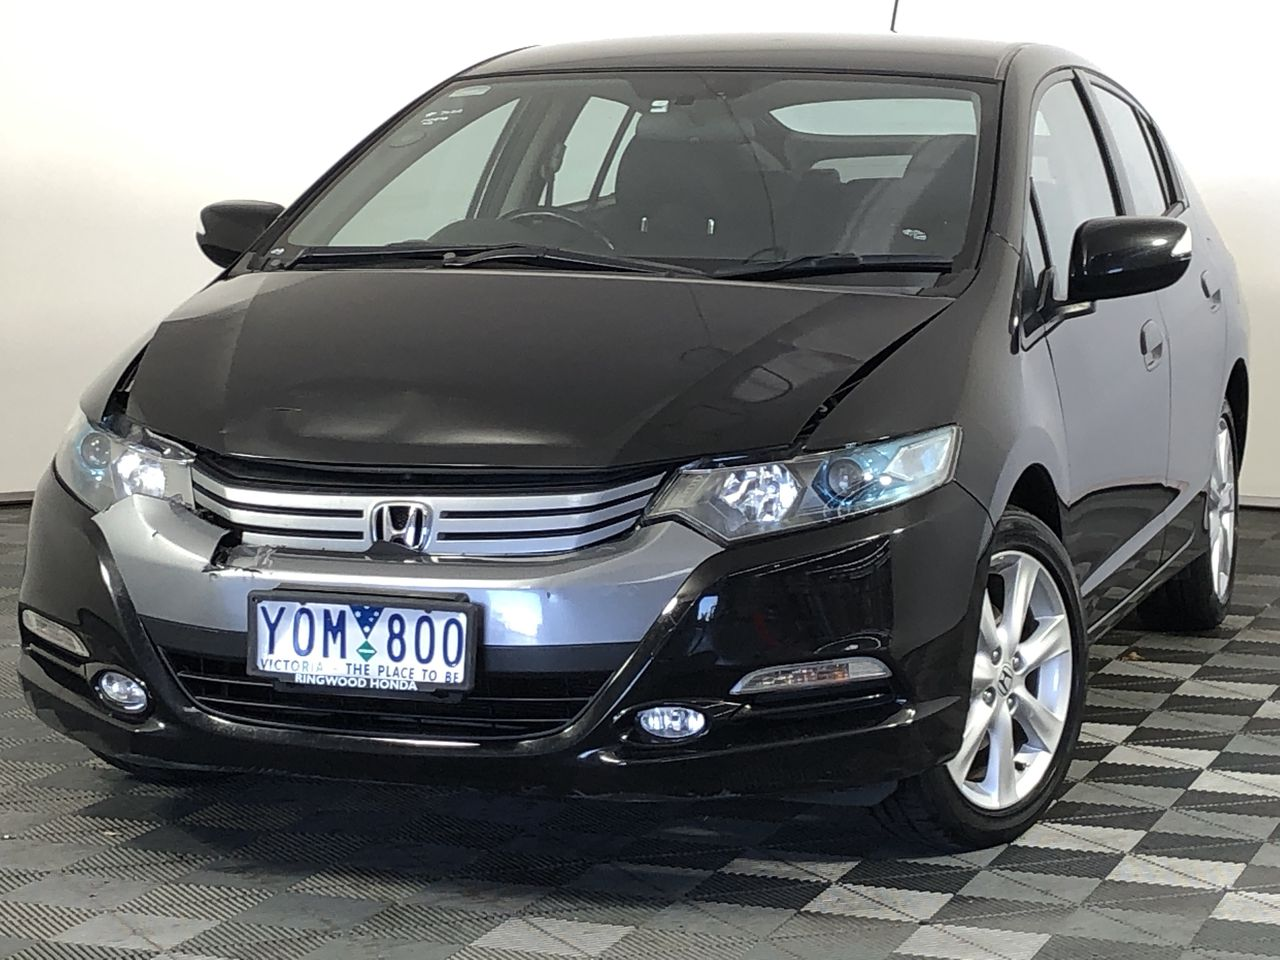 2011 Honda INSIGHT VTi-L HYBRID 2ND GEN CVT Hatchback